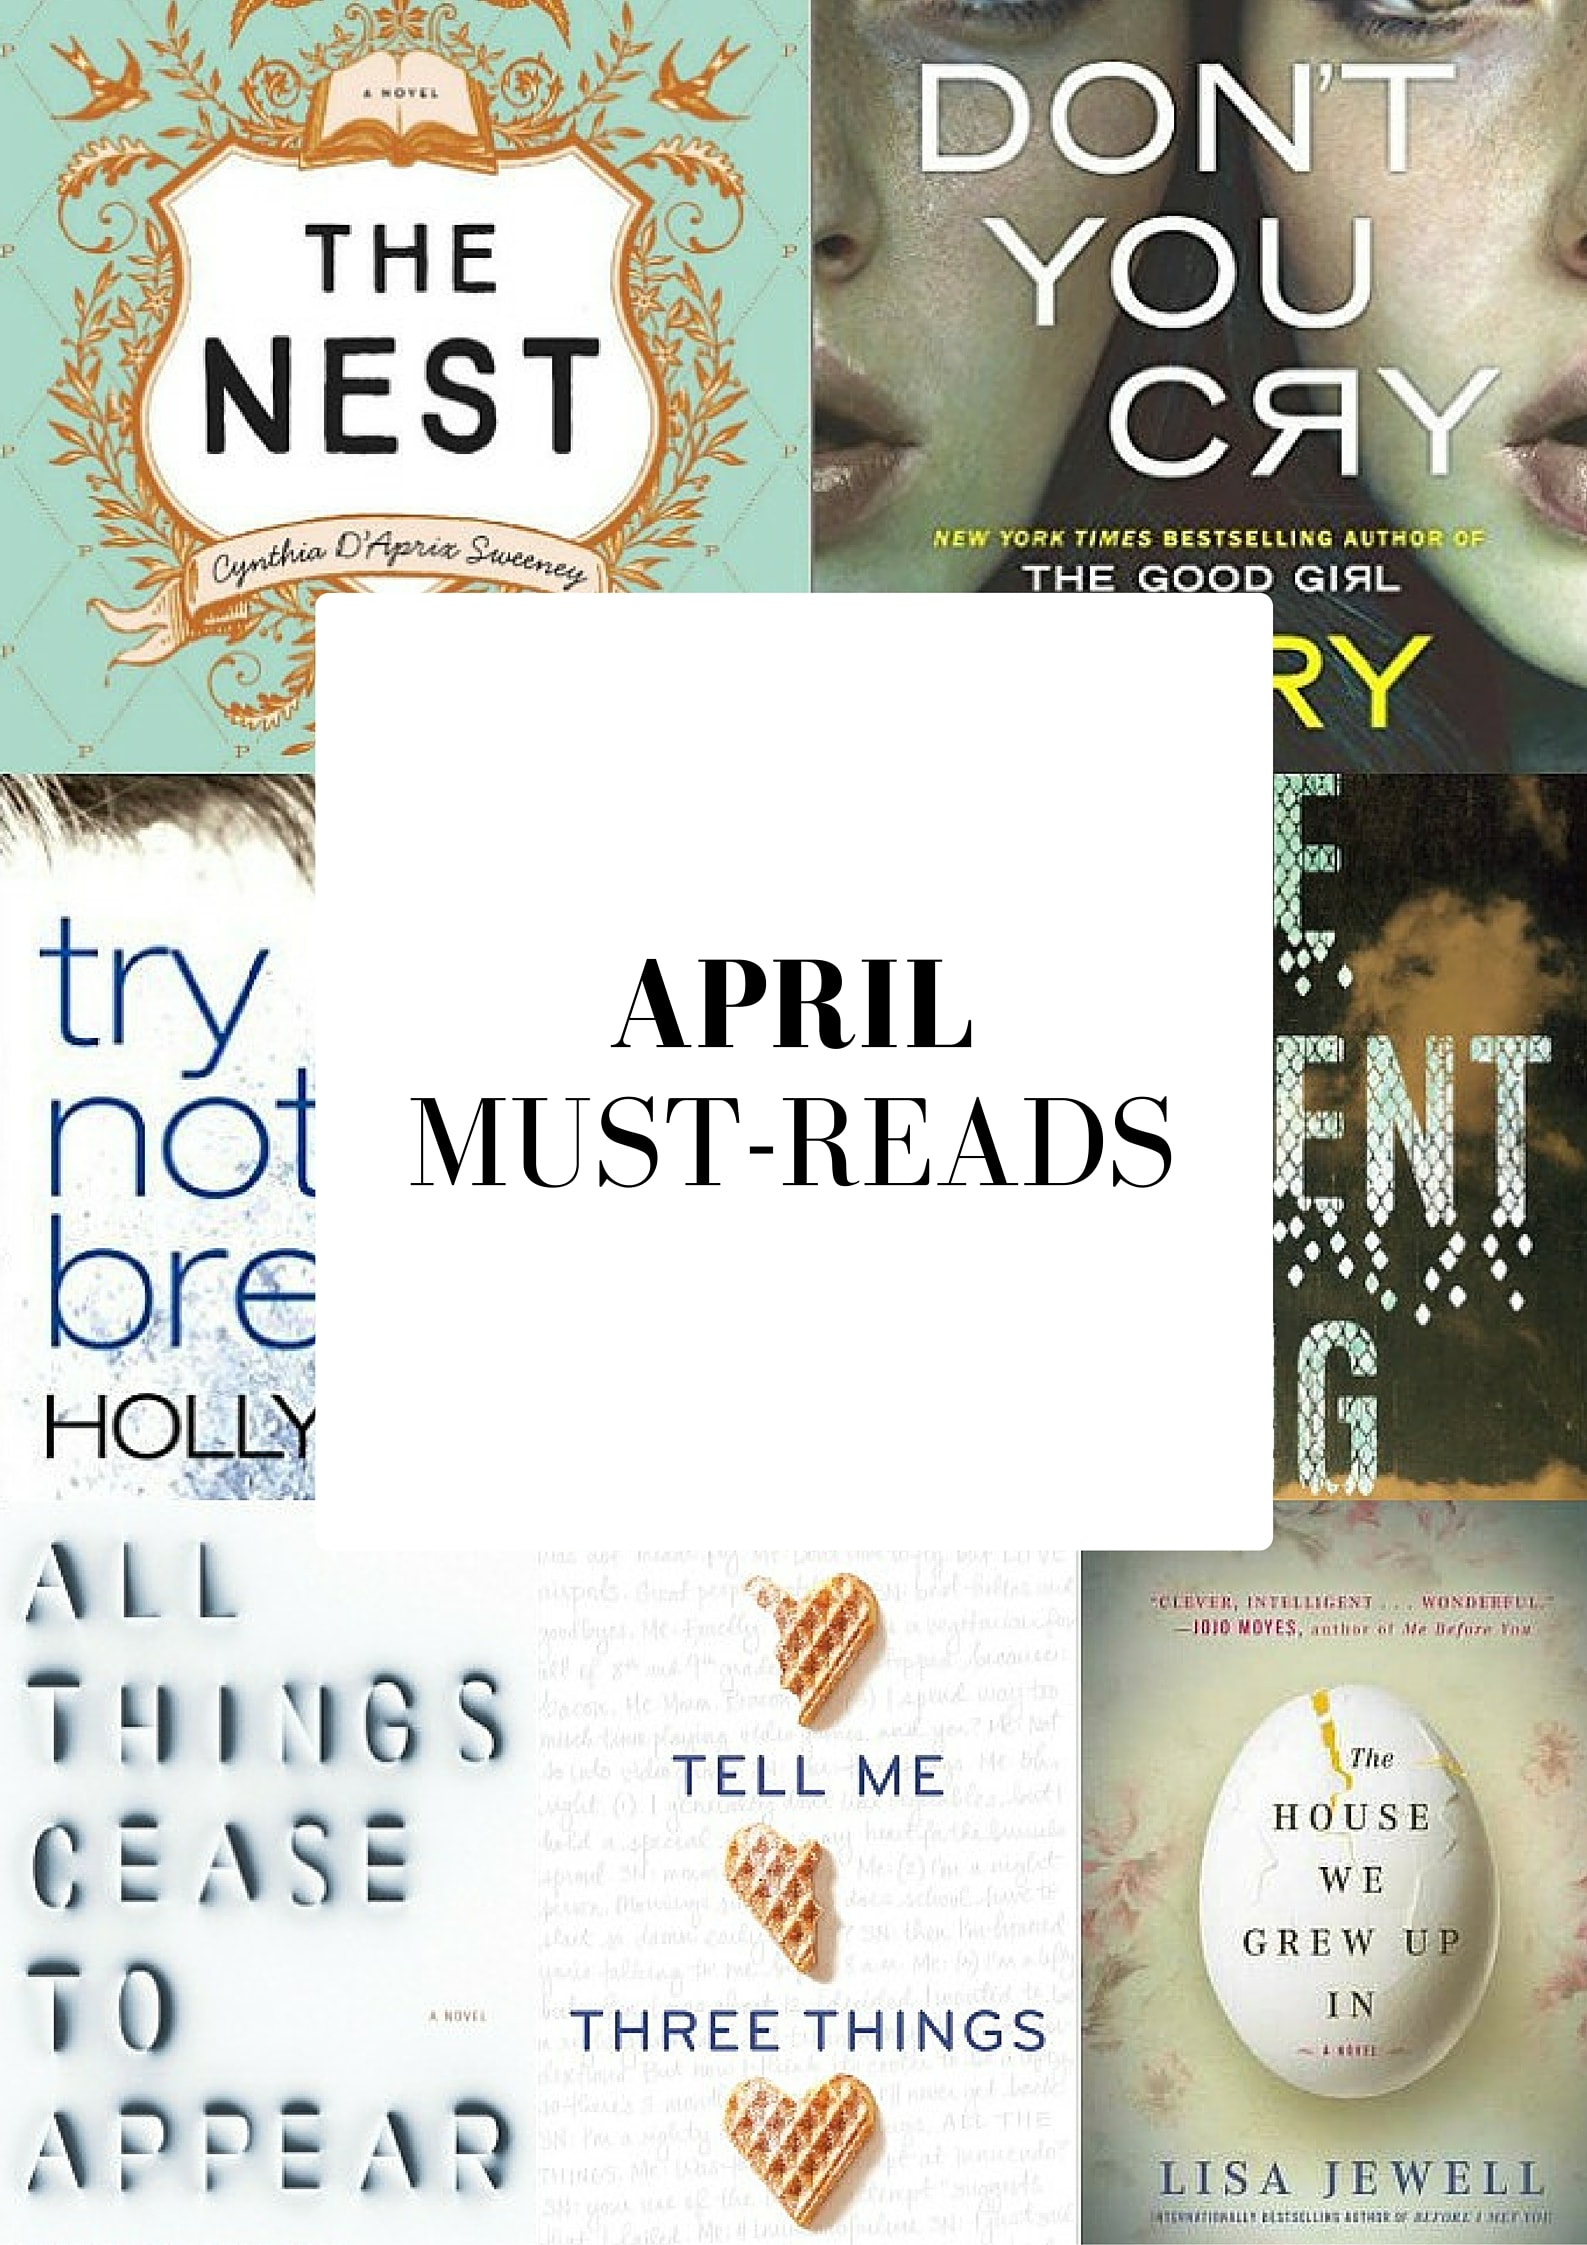 April 2016 Must-Reads from MomAdvice.com